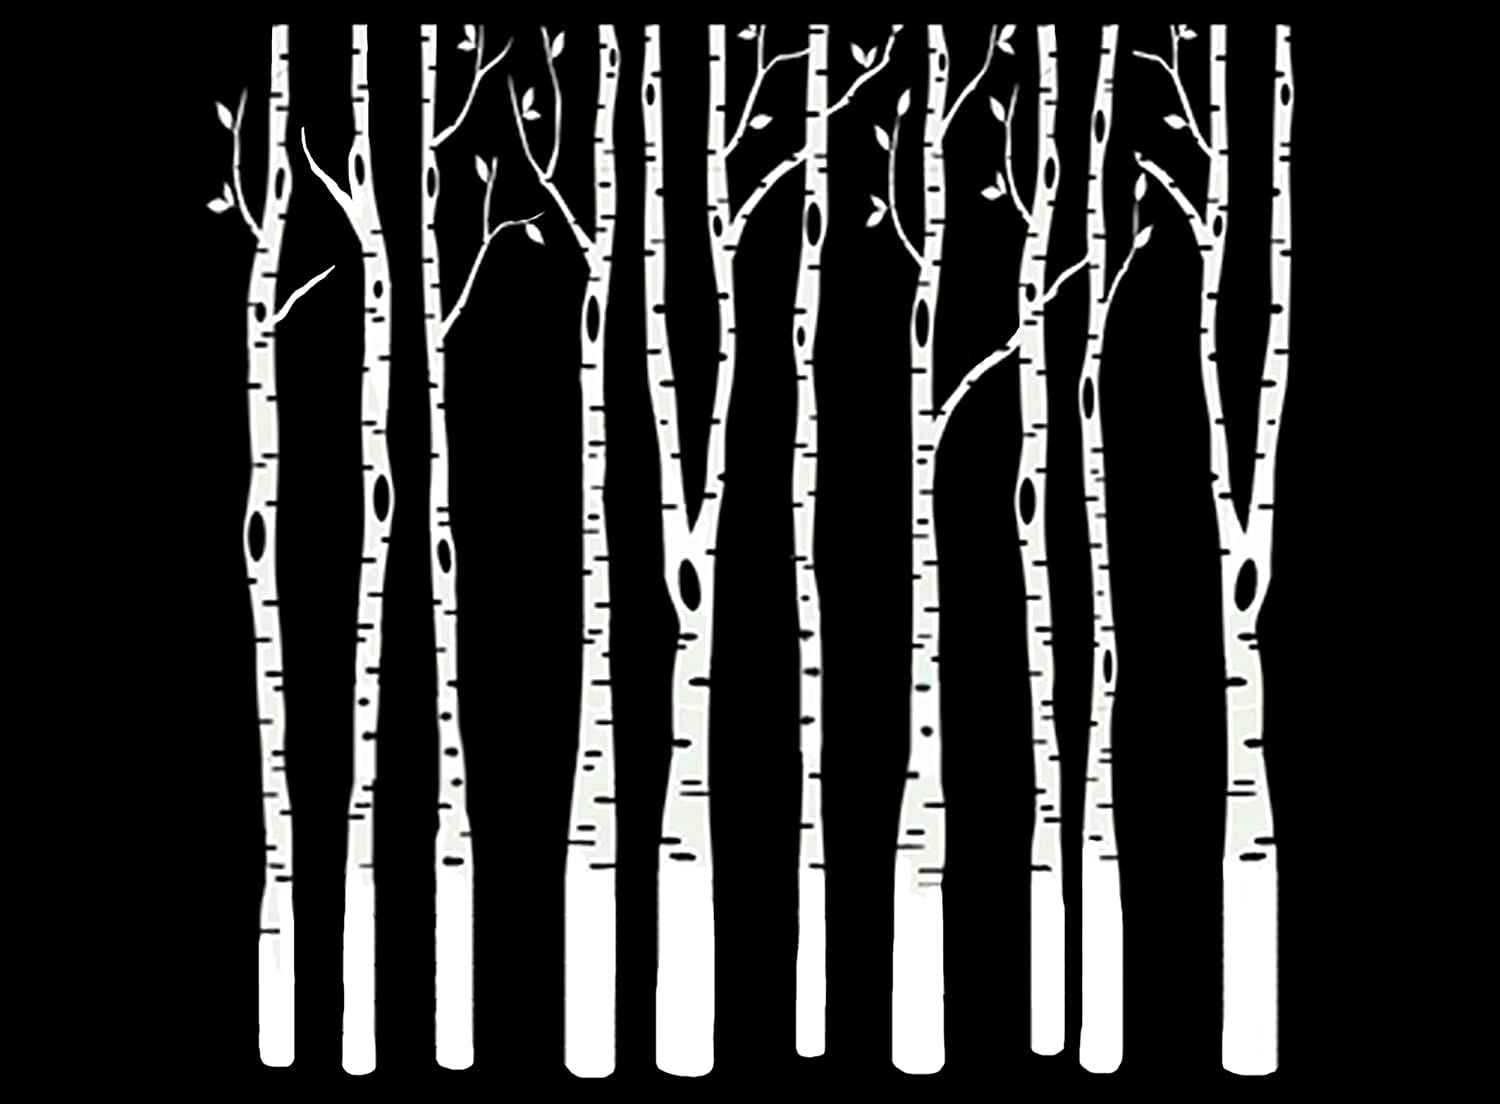 Birch Trees 3-7/8' - White 16CC575 Fused Glass Decal Must be kiln fired Captive Decals